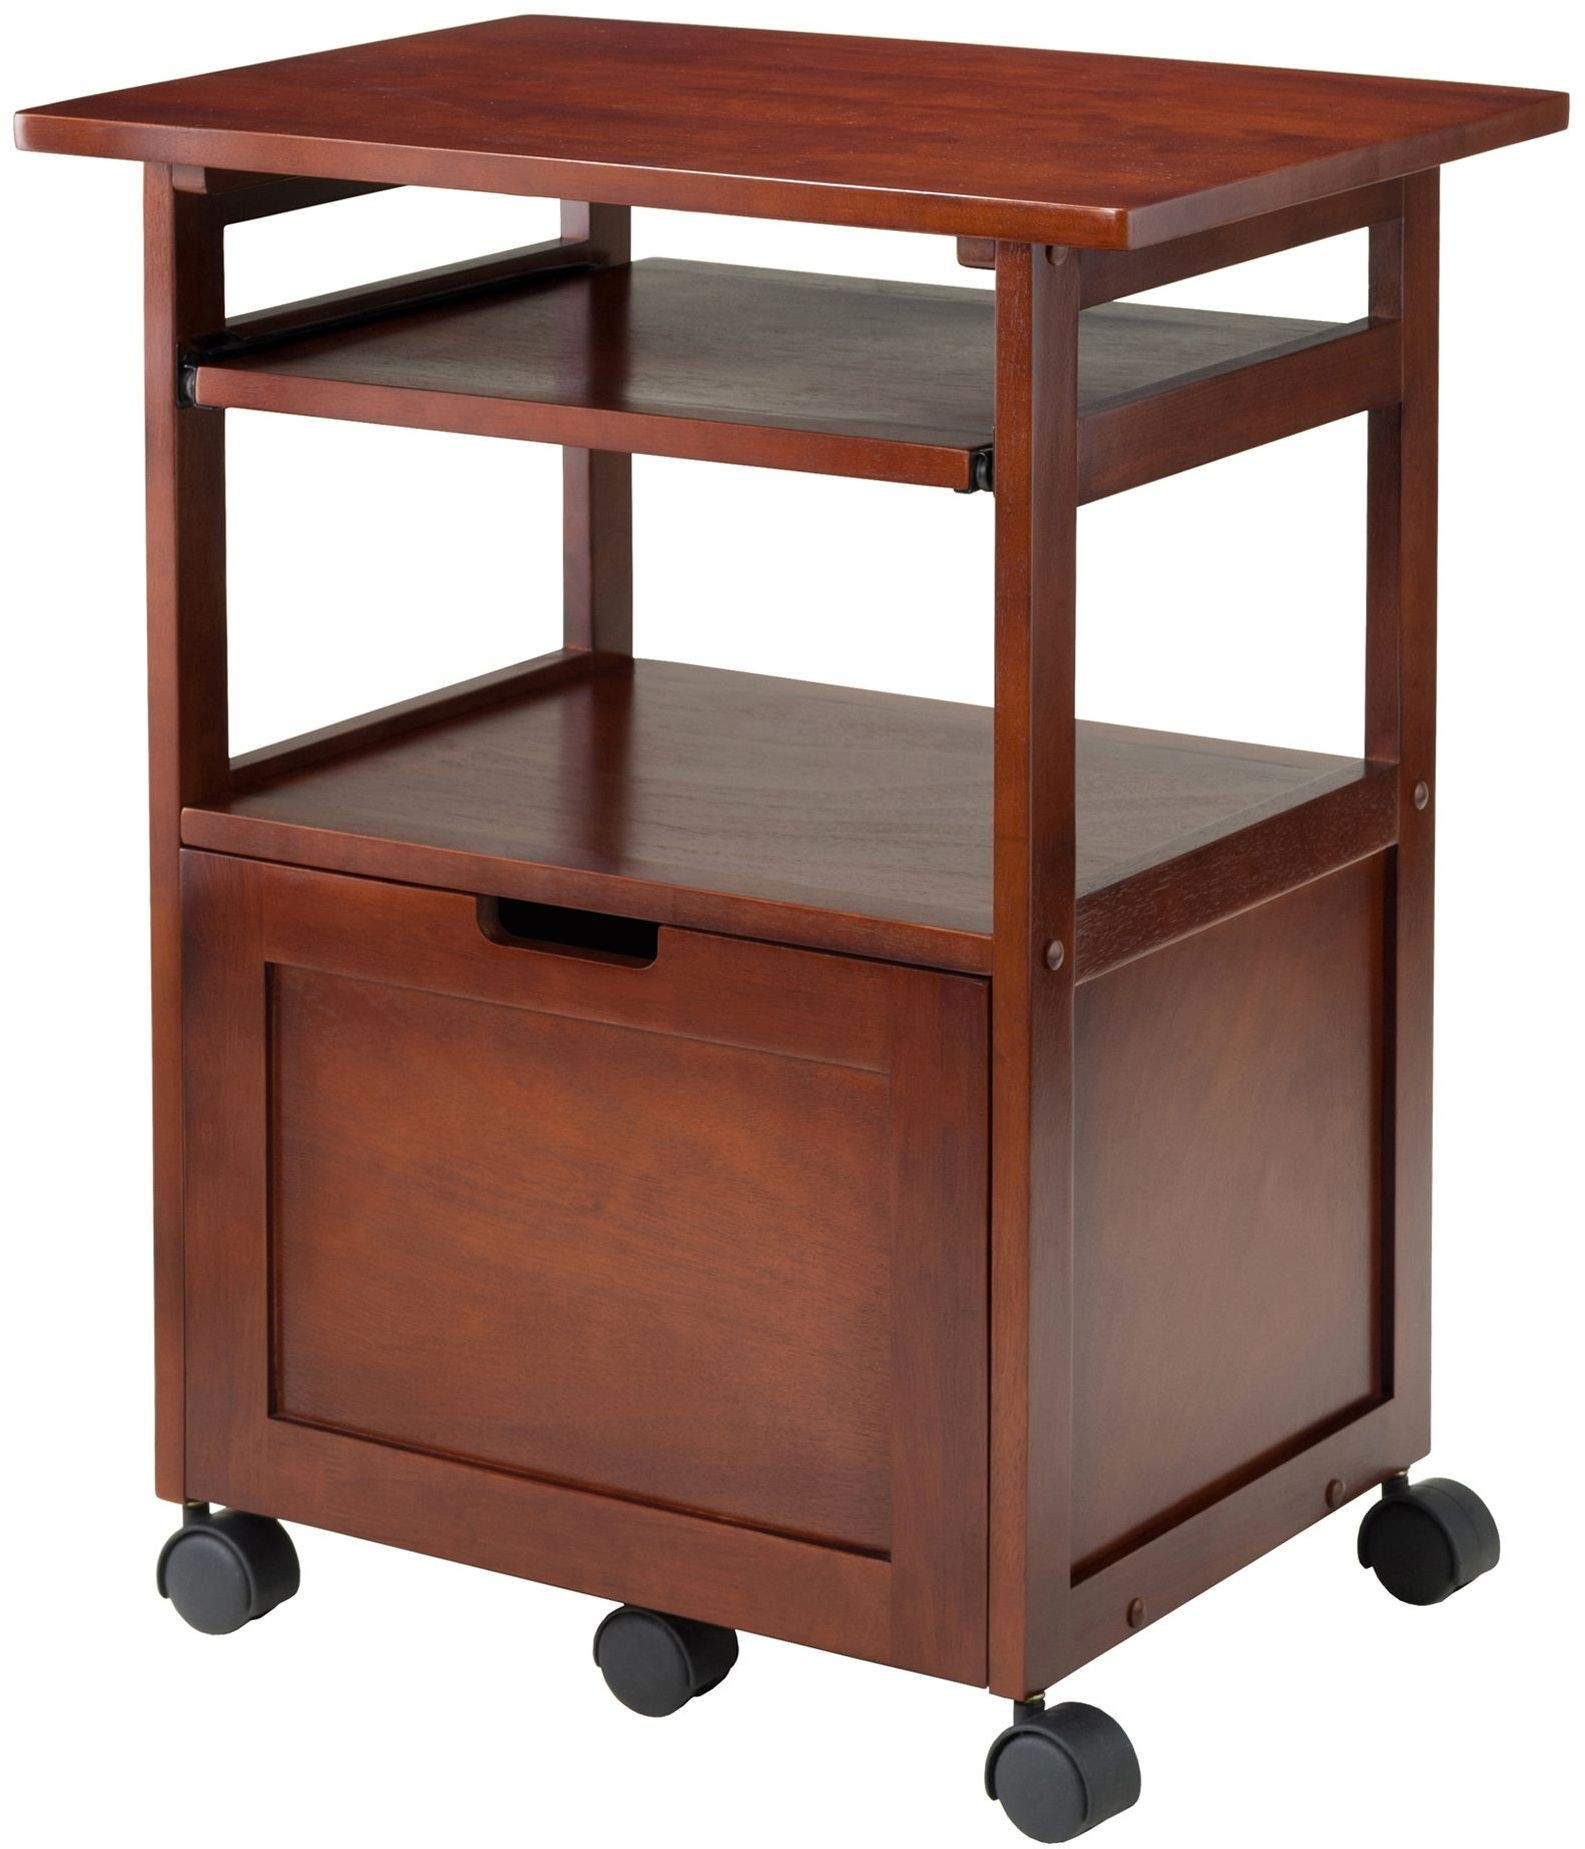 piper walnut printer stand with keyboard from winsomewood coleman winsomewoods winsome wood accent table red wingback chair unfinished bedside console drawers pottery barn rattan